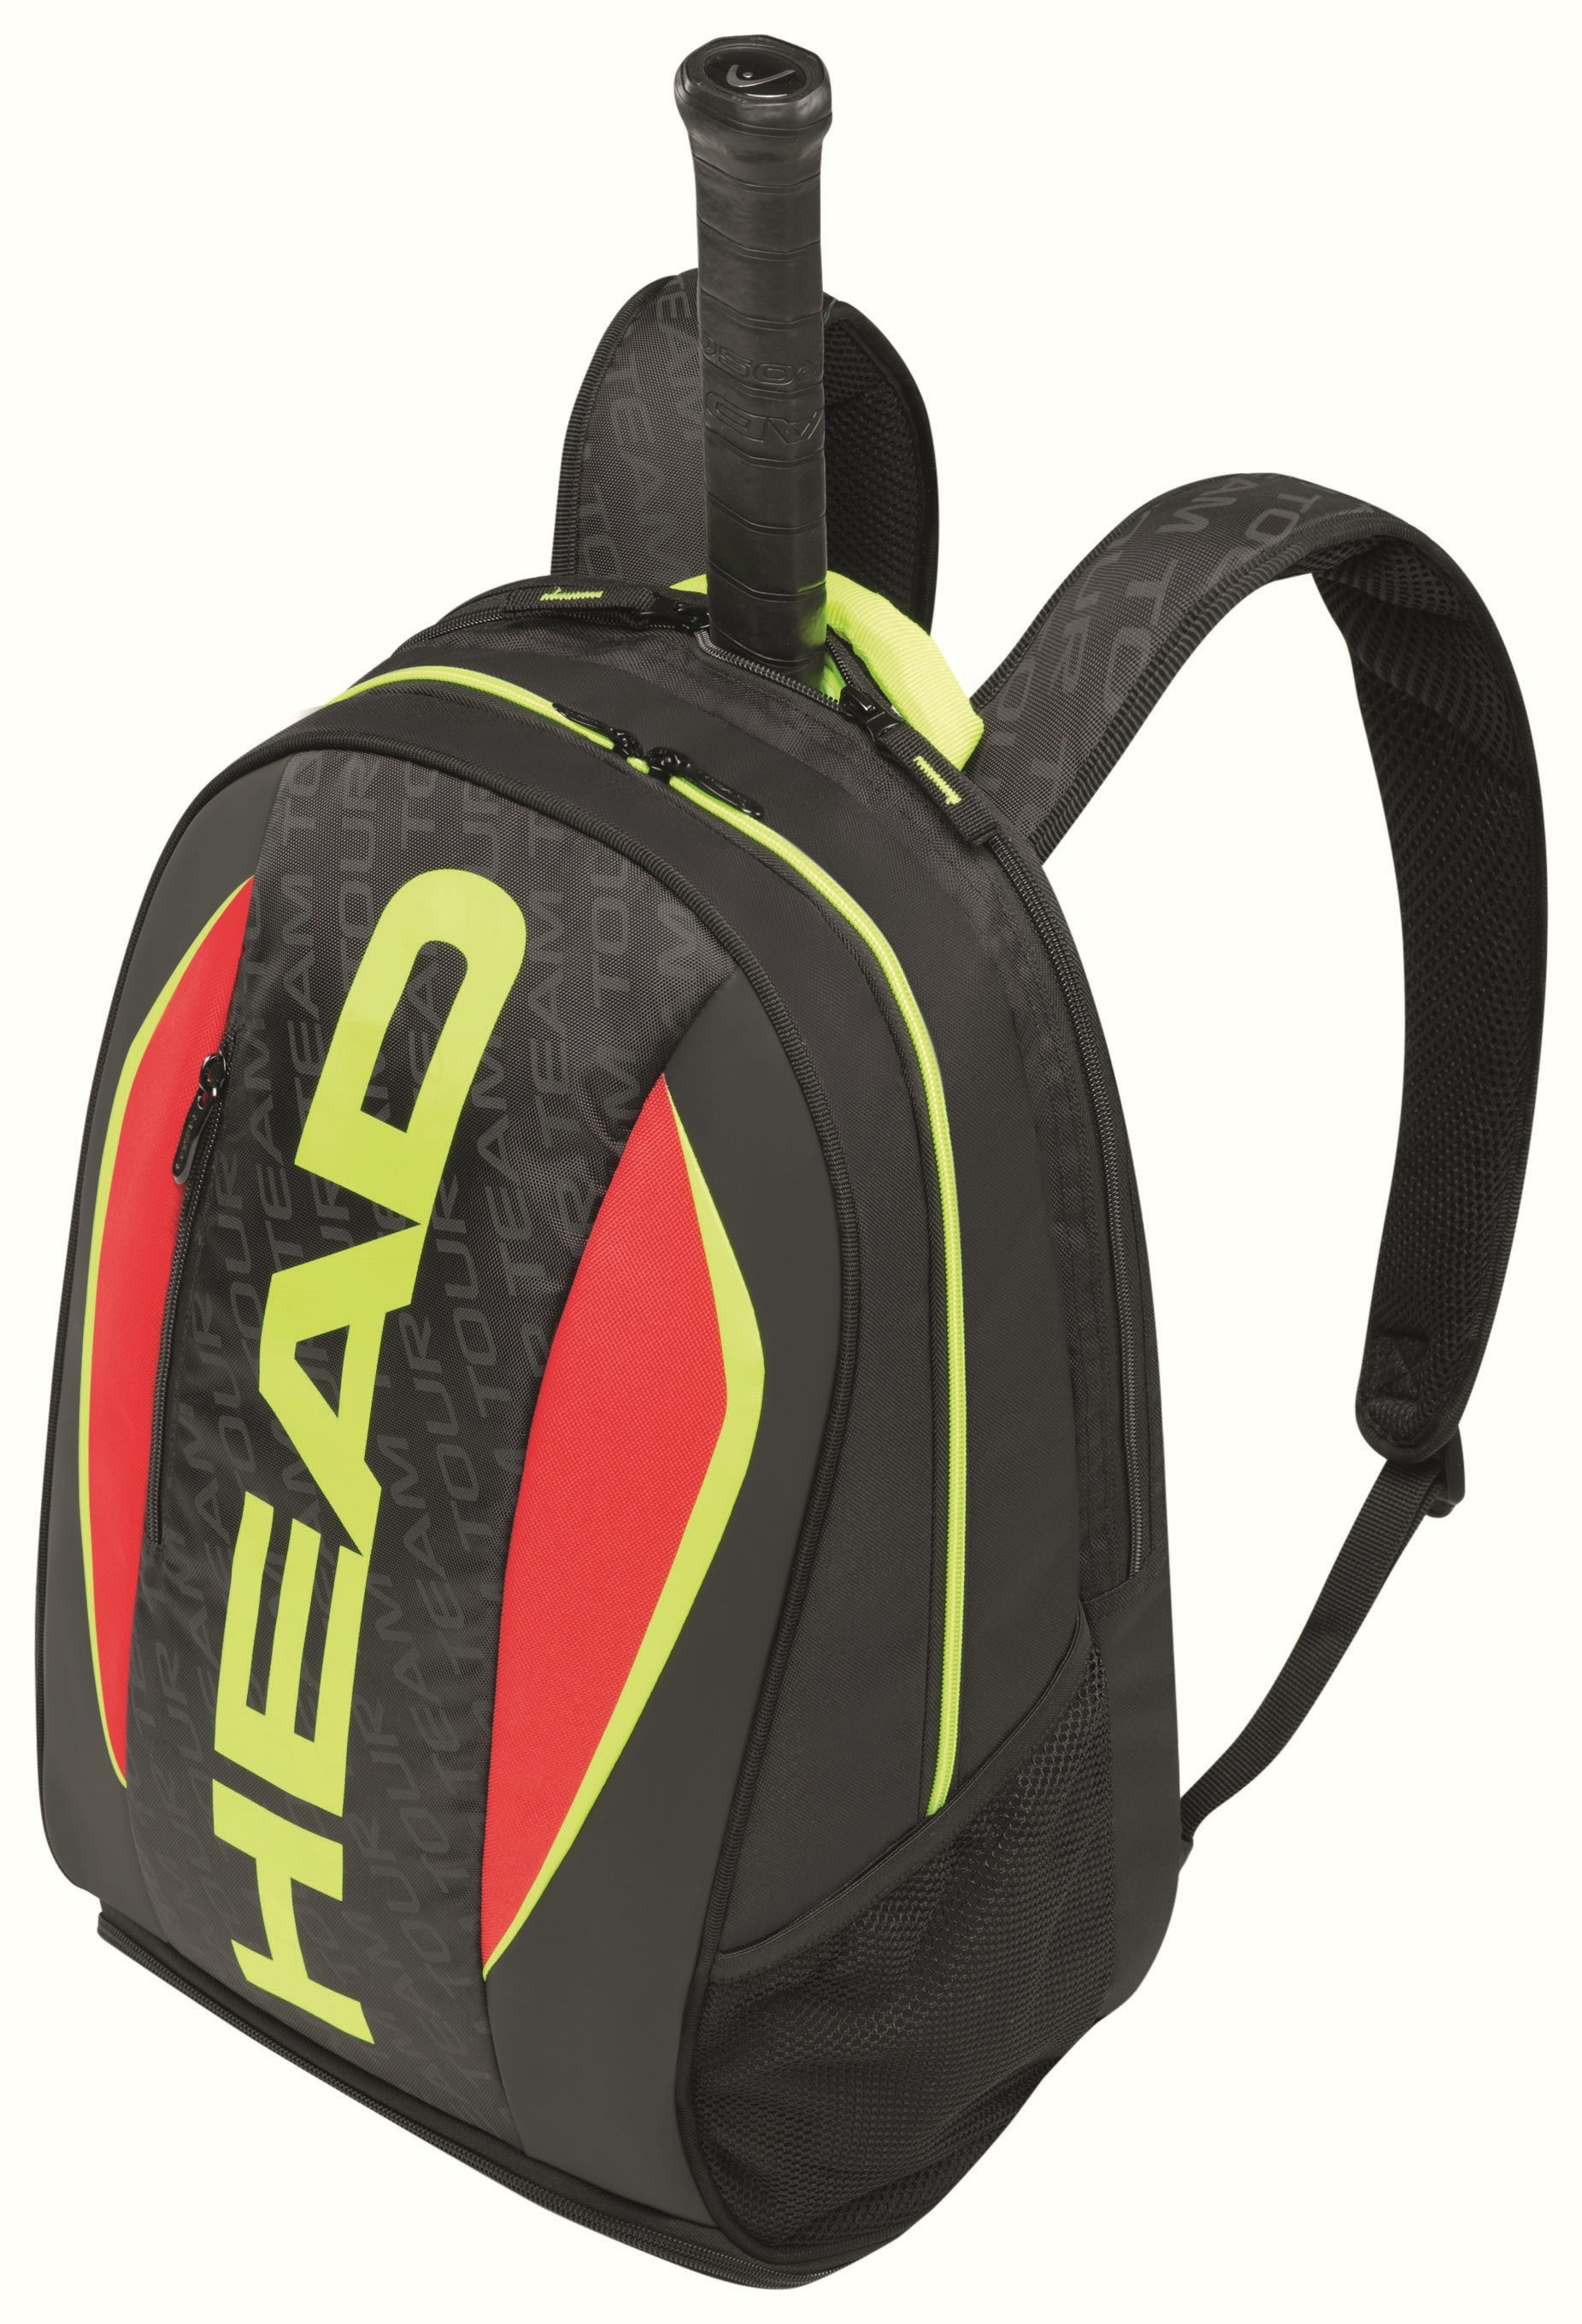 Tenisový batoh HEAD Extreme black/lime/red new